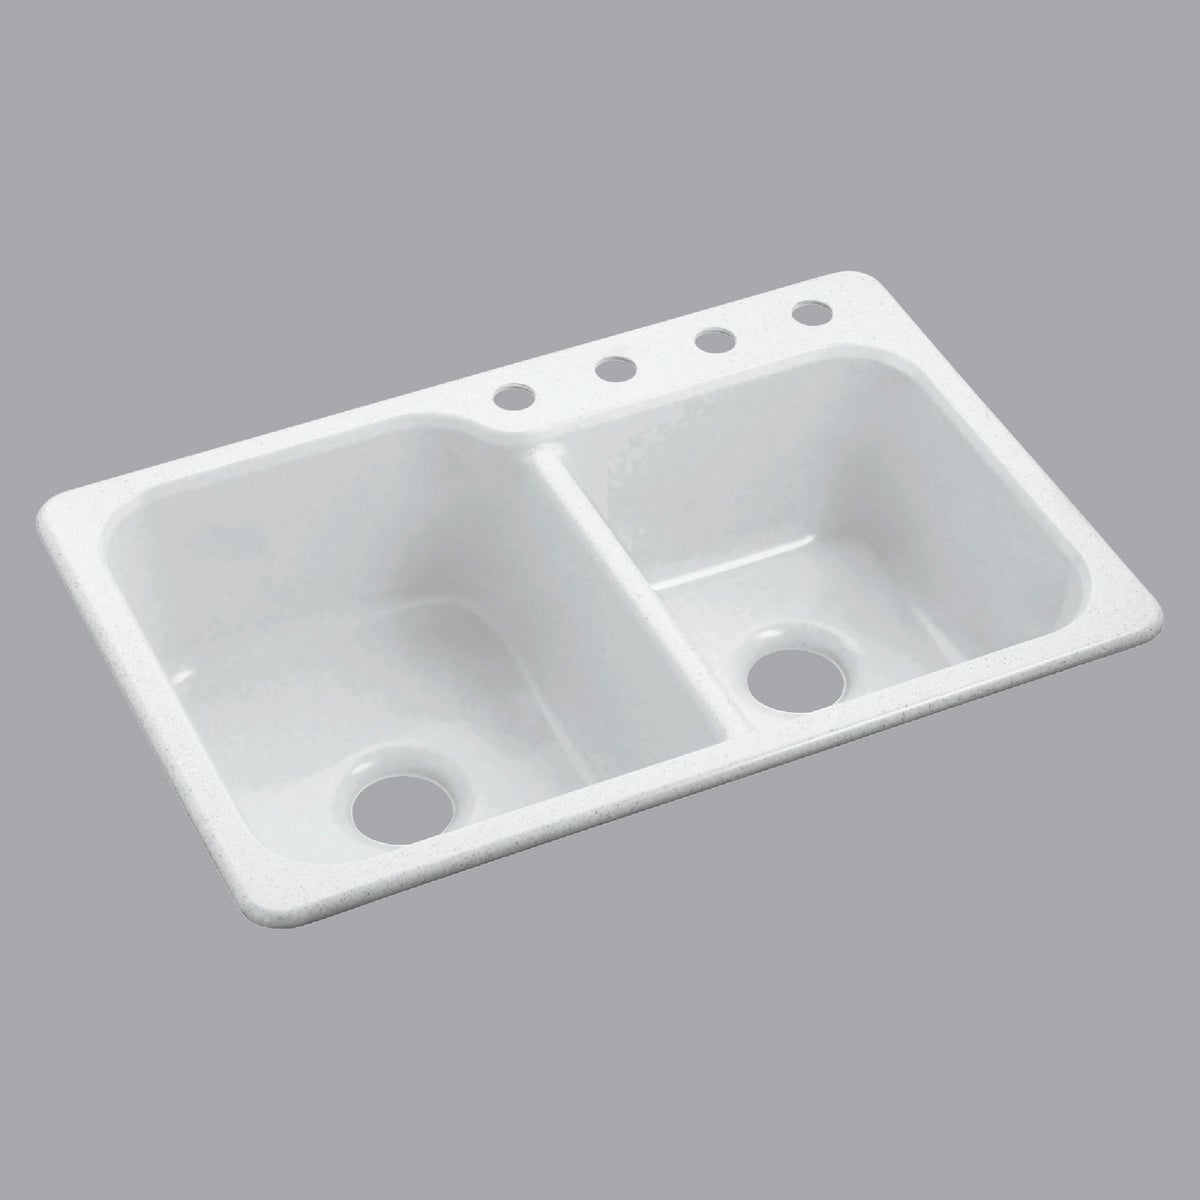 WHITE COMPOSITE SINK - SC3322DBG-U-0 by Sterling Pbg/vikrell